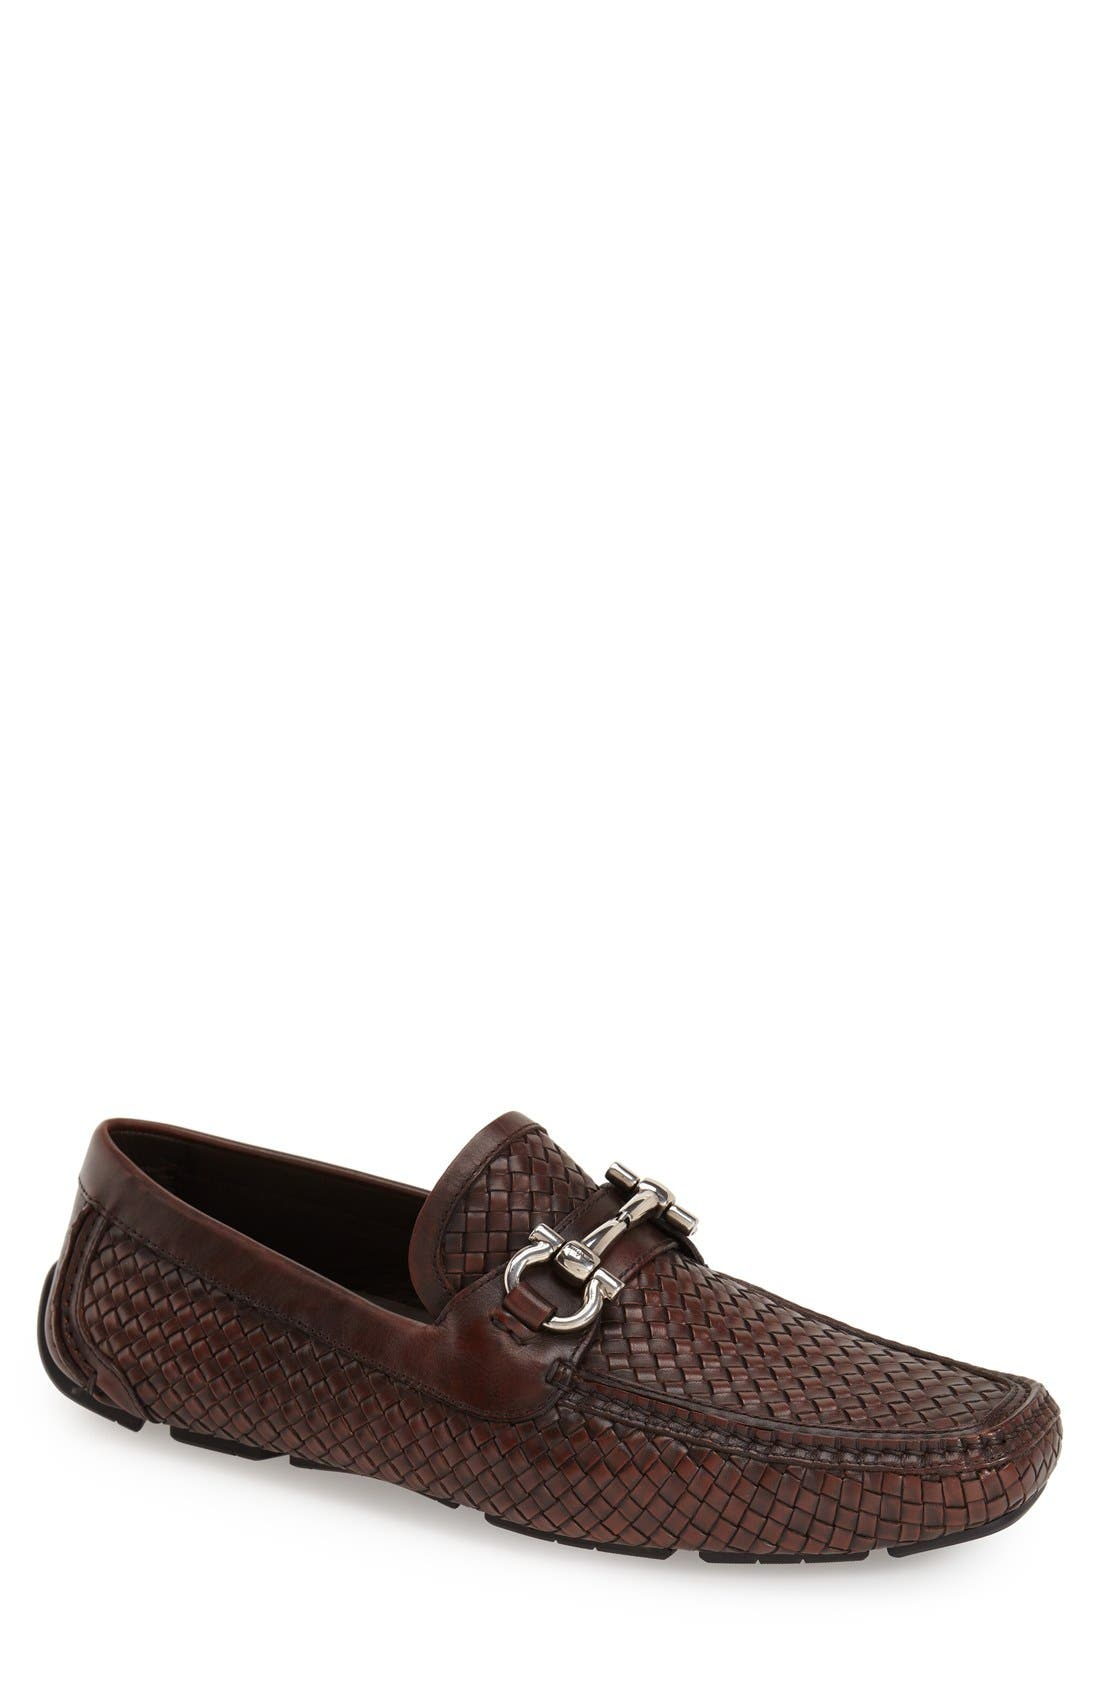 'Parigi' Woven Bit Loafer,                         Main,                         color, 202